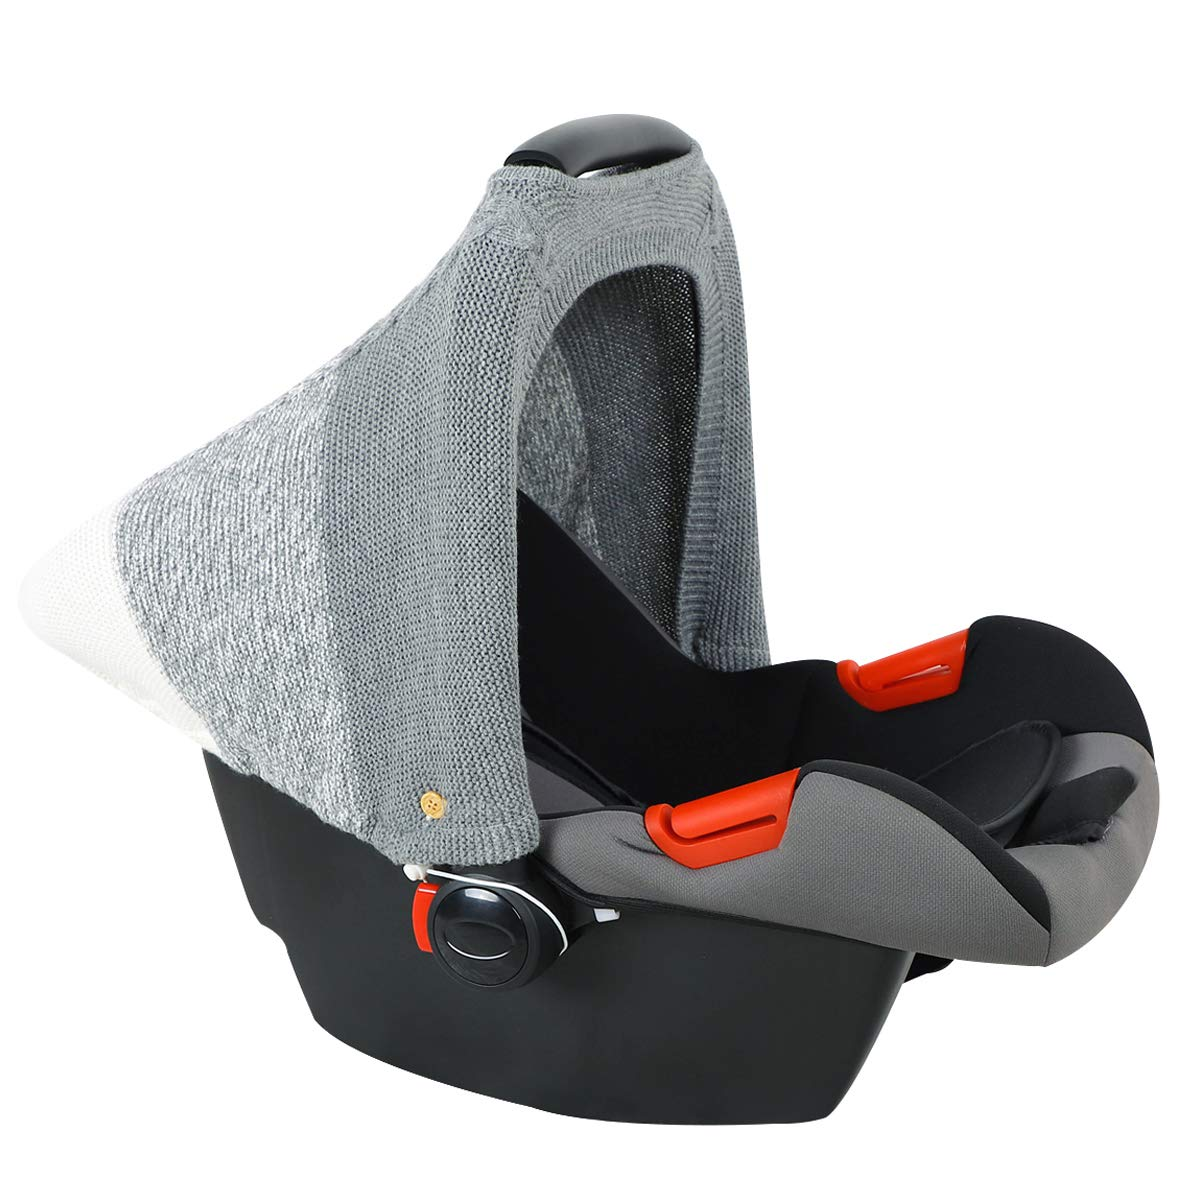 DaMohony Baby Car Seat Cover, Toddler Knit Stretchy Breathable Infant Stroller Cover Carseat Canopy